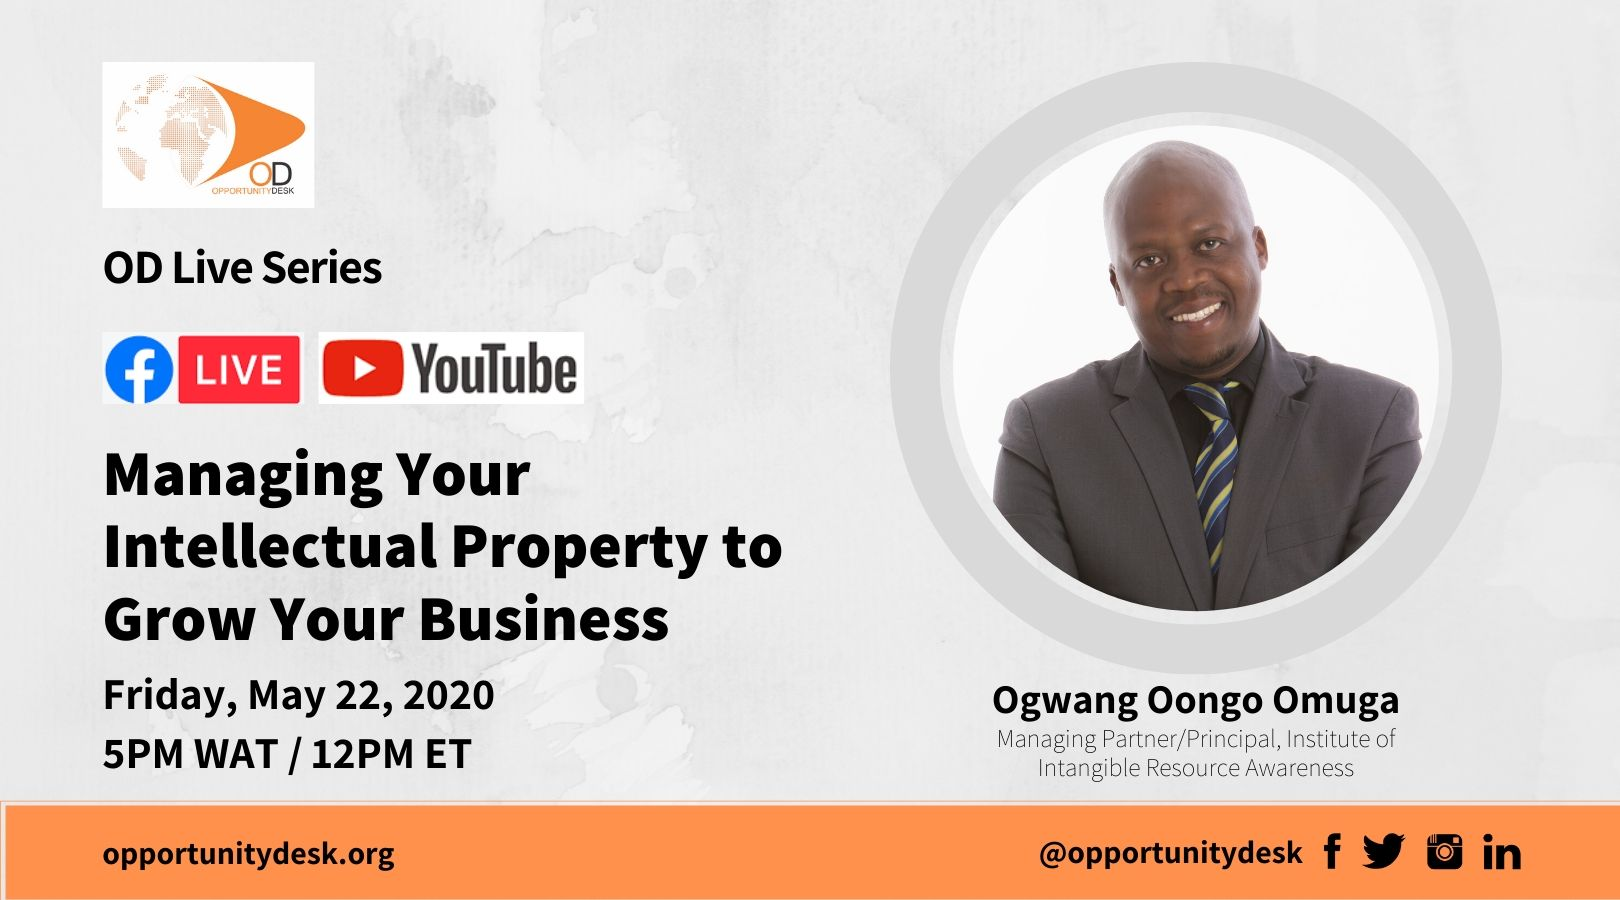 OD Live with Ogwang Oongo Omuga: Managing Your Intellectual Property to Grow Your Business – May 22, 2020